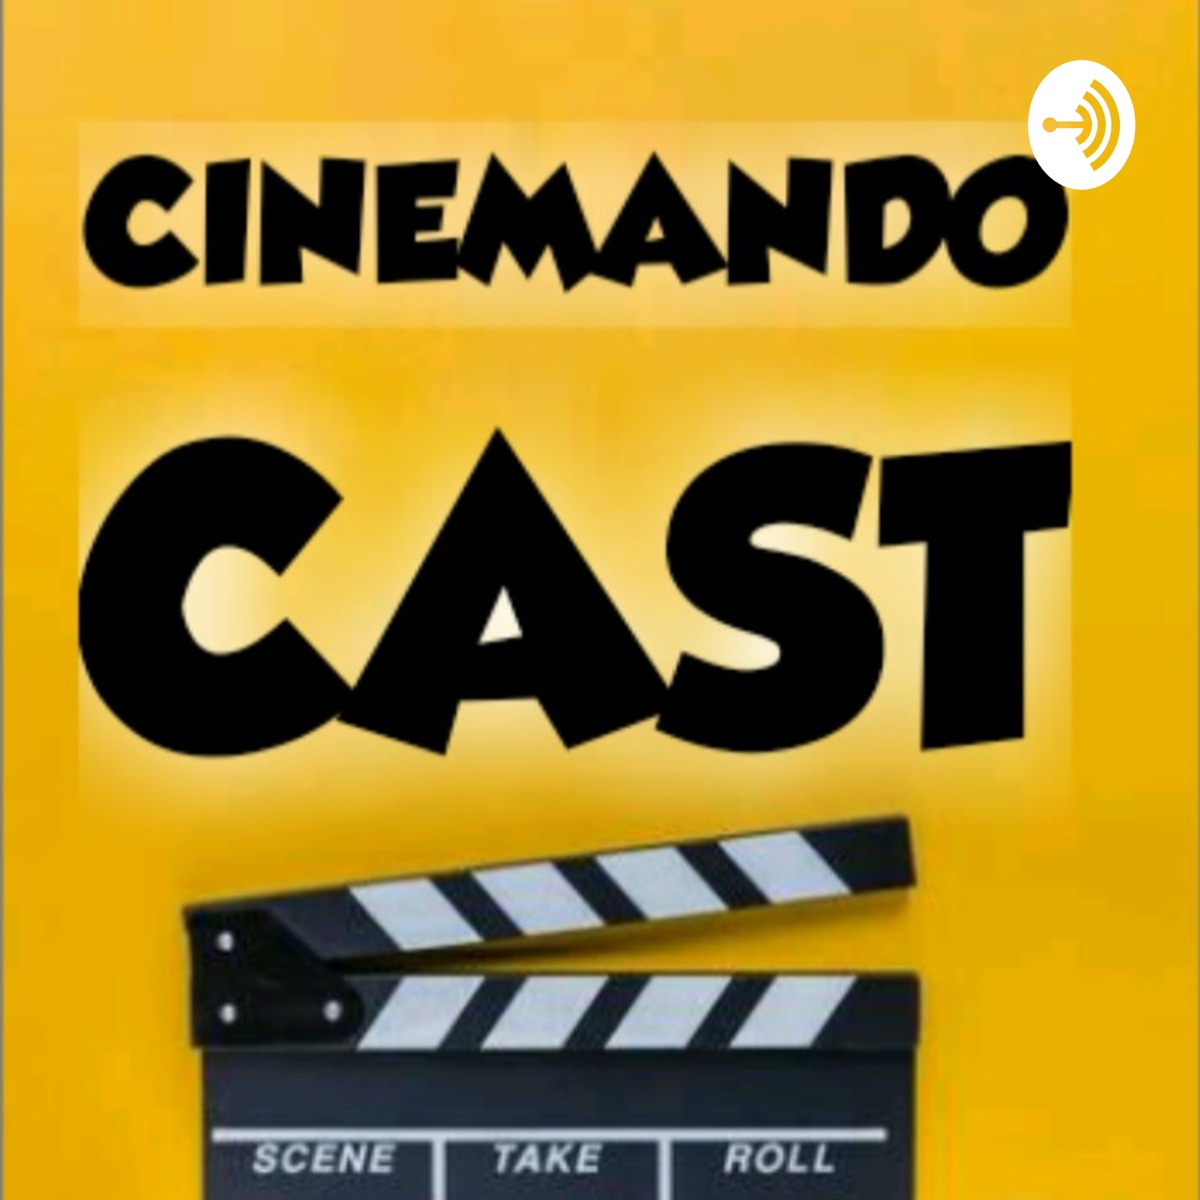 Cinemando Cast